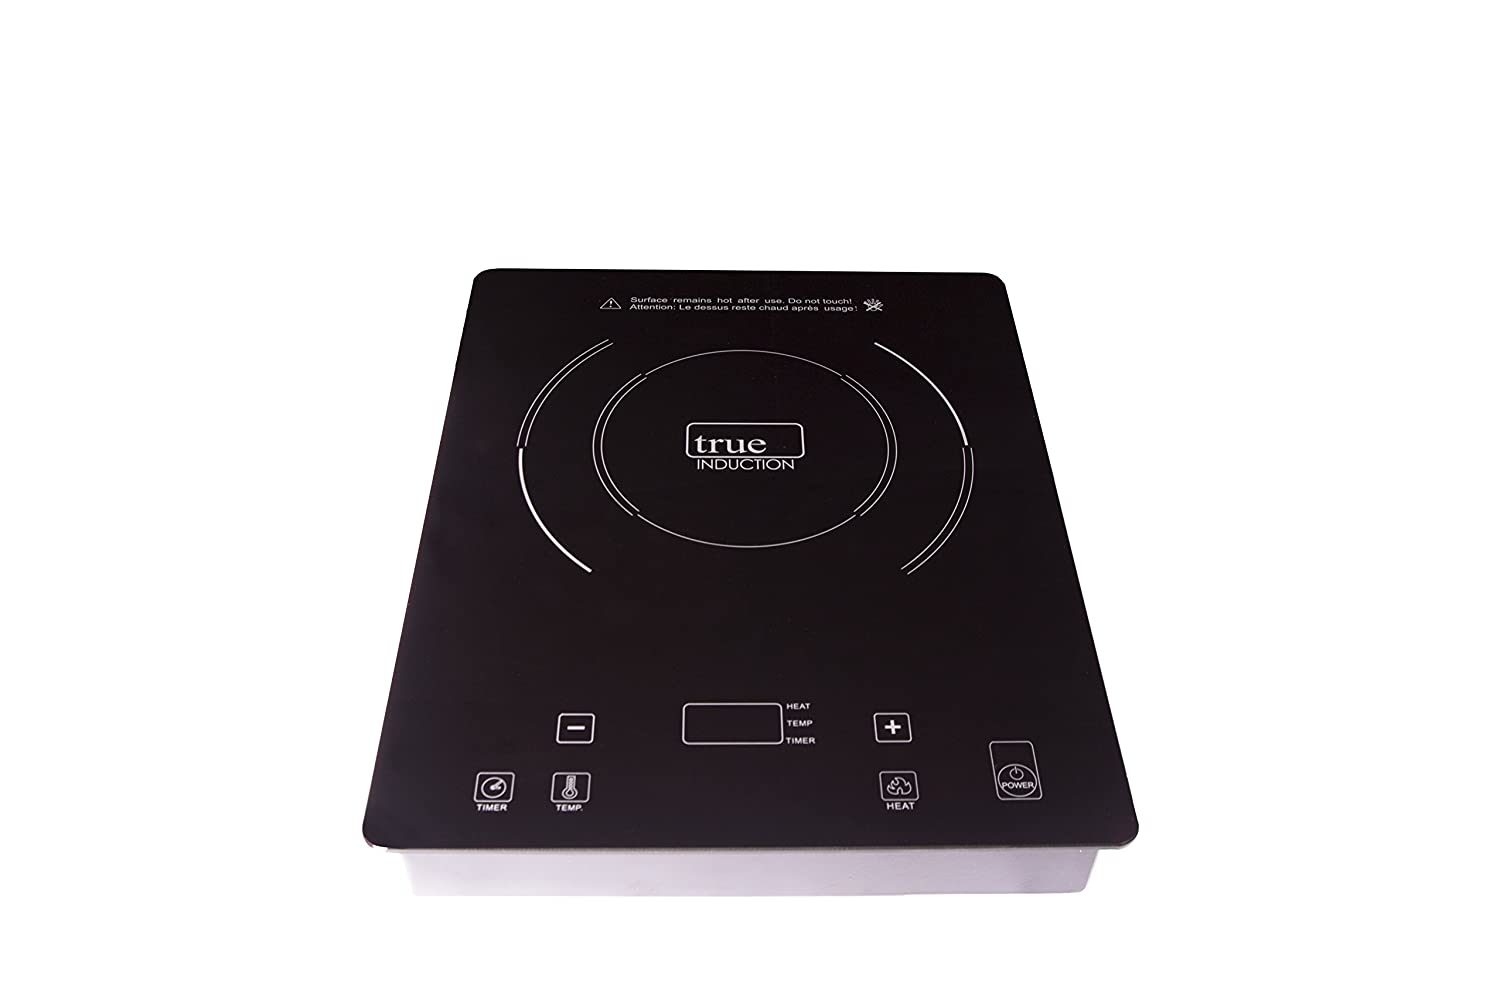 True Induction Single Cooktop